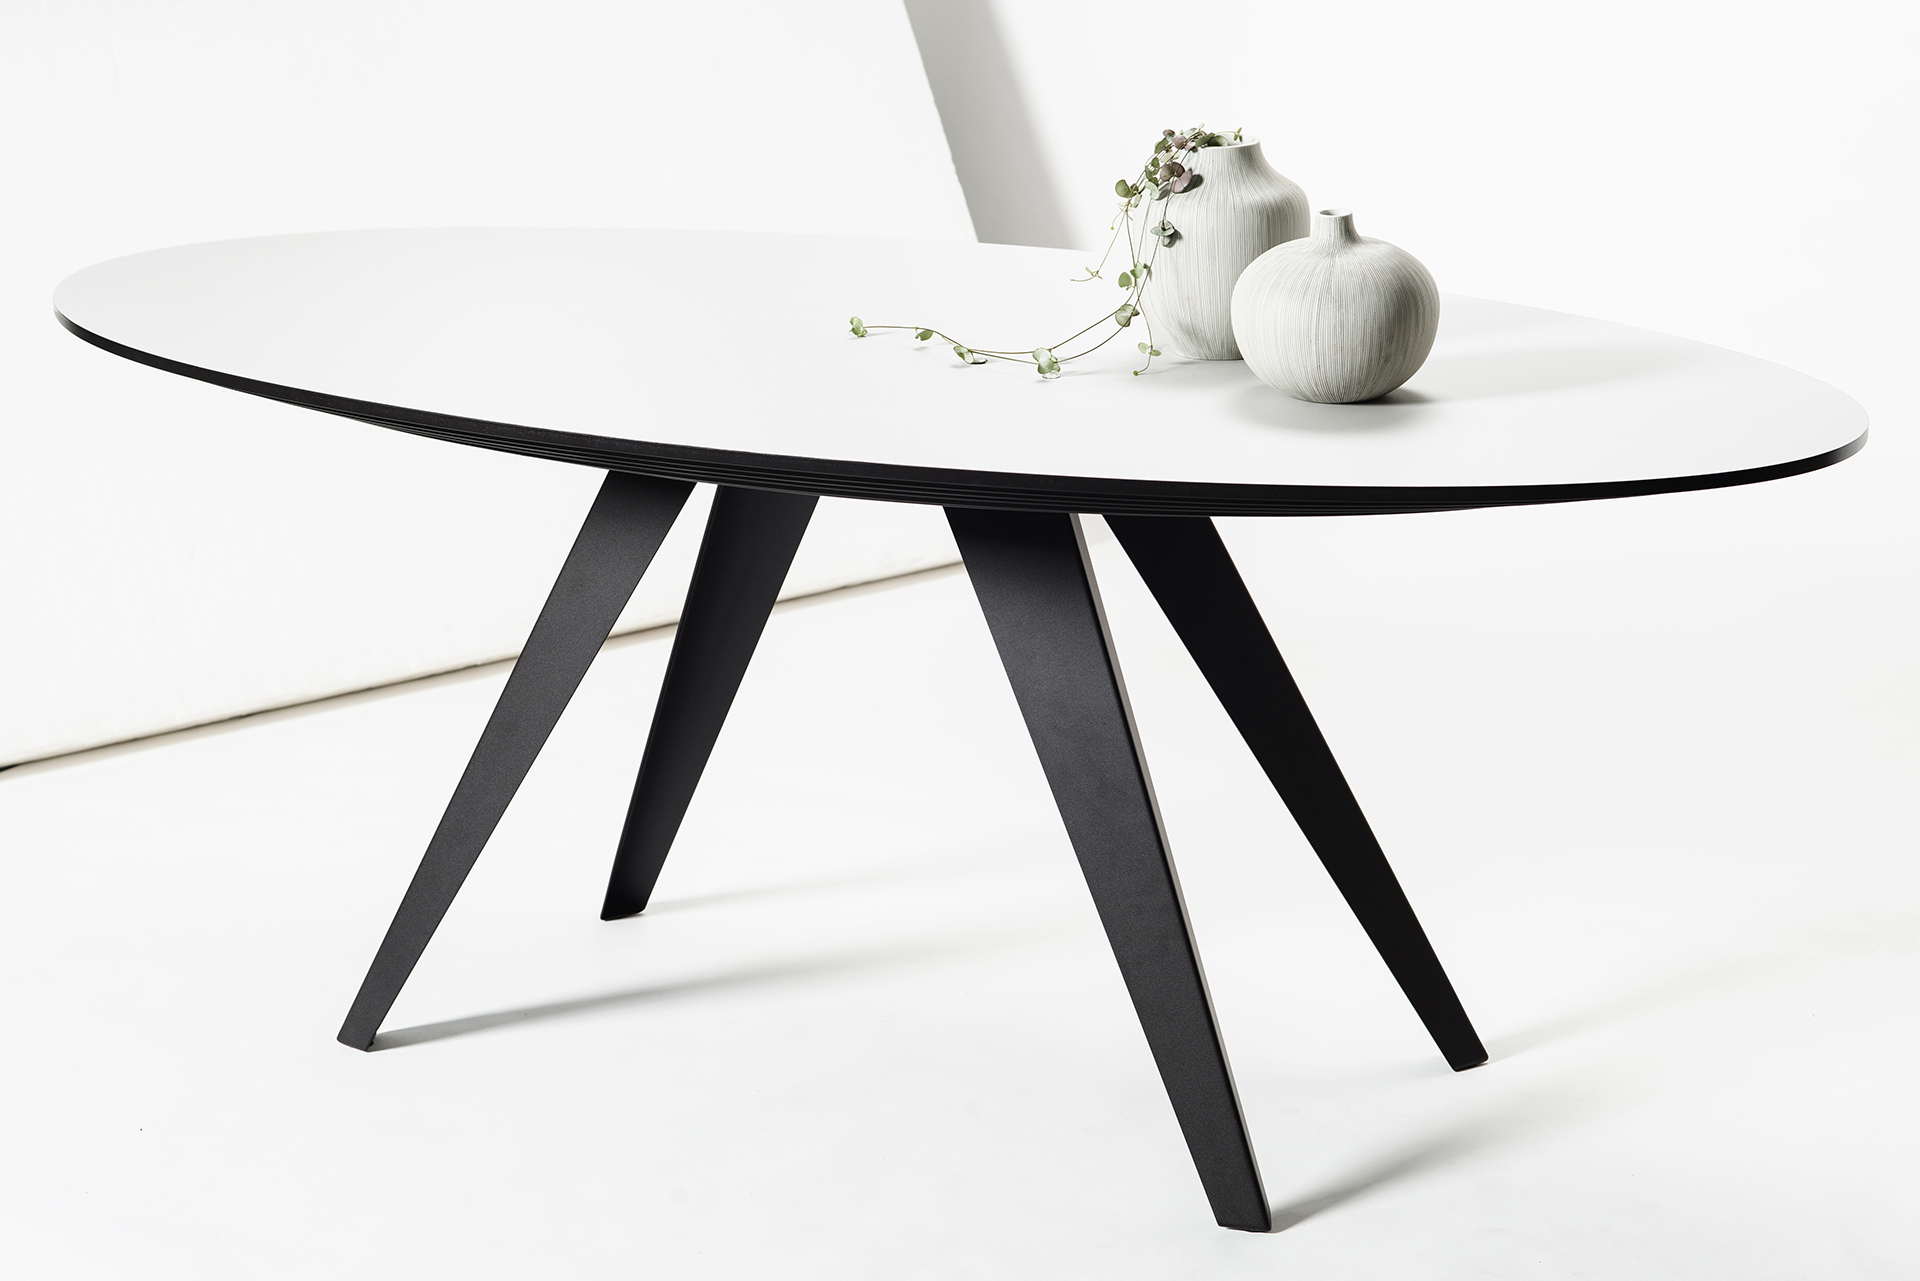 Eetkamer Tafel Wit Ovaal.Ovale Design Eettafel Belly L Kees Marcelis L Odesi Your Dutch Design